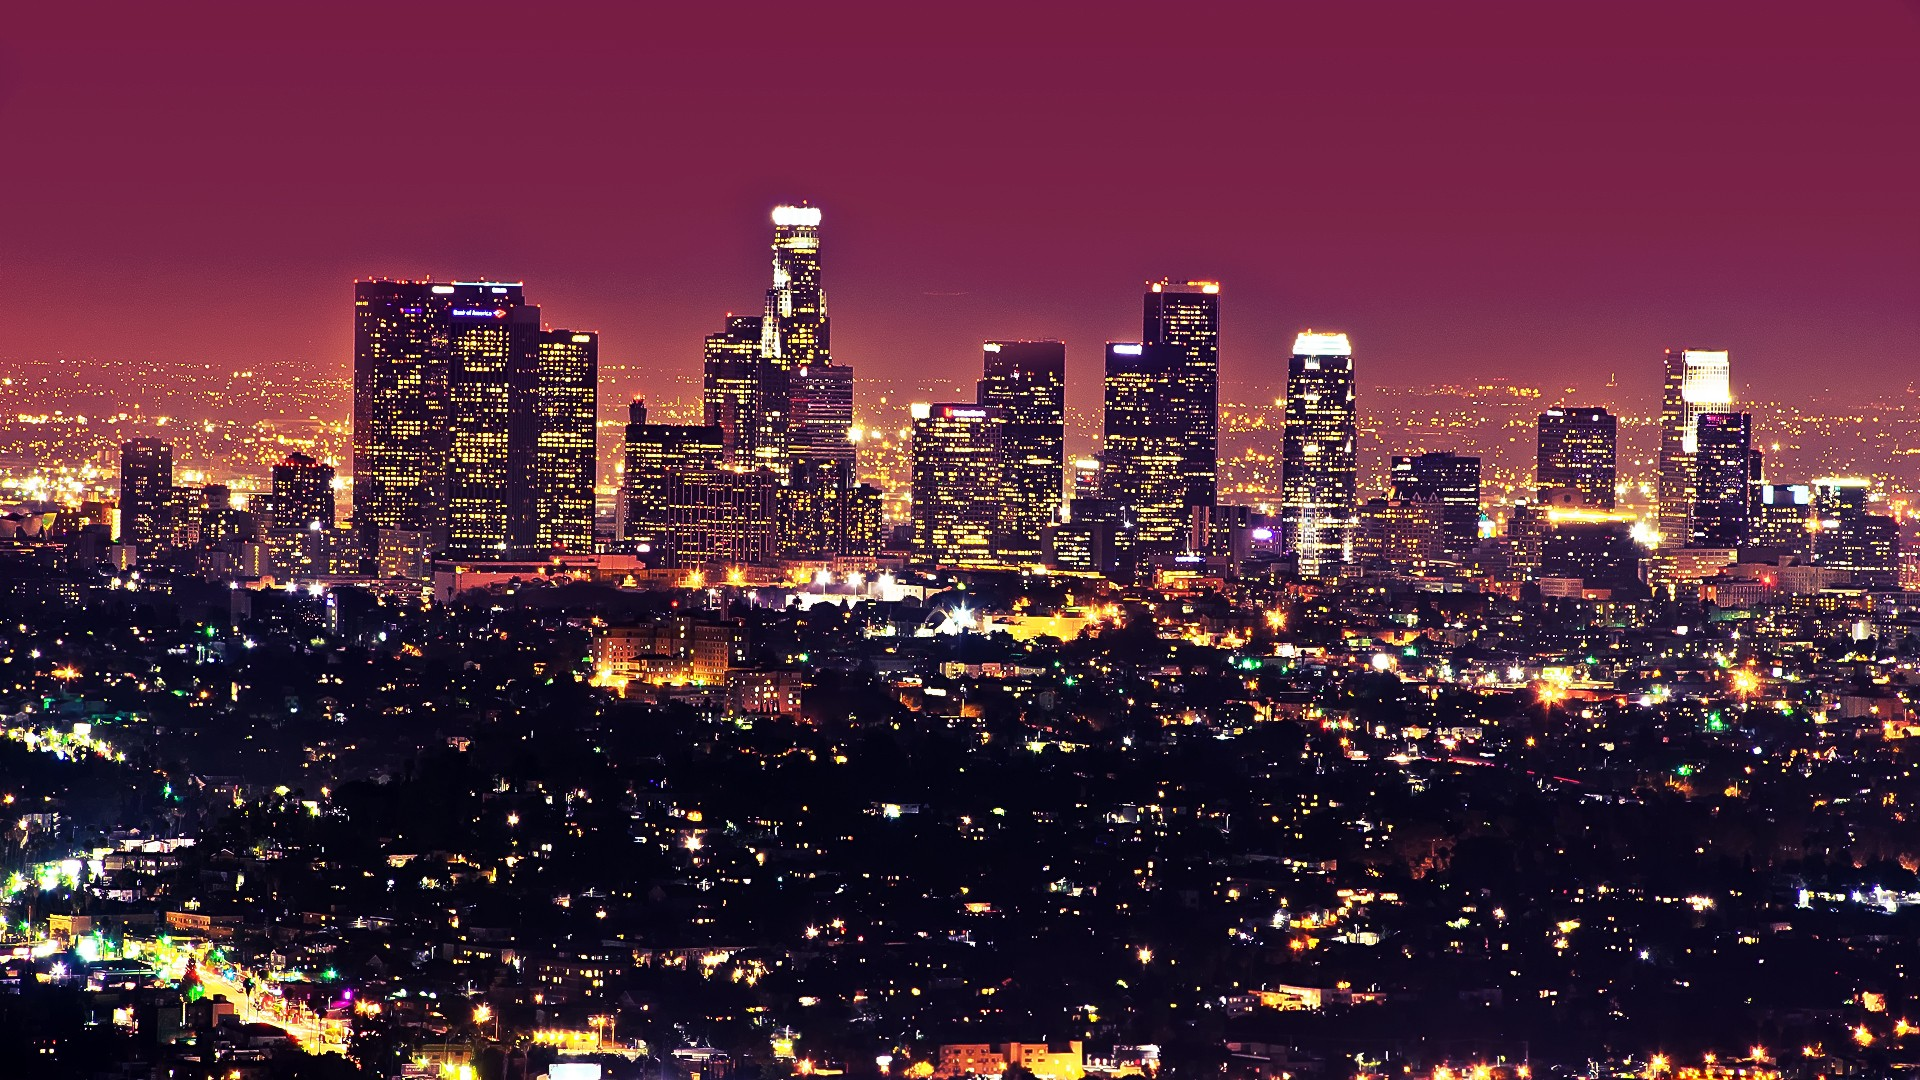 Tag Los Angeles Wallpaper For Bedroom Wallpapers High Definition - City lights wallpaper for bedroom